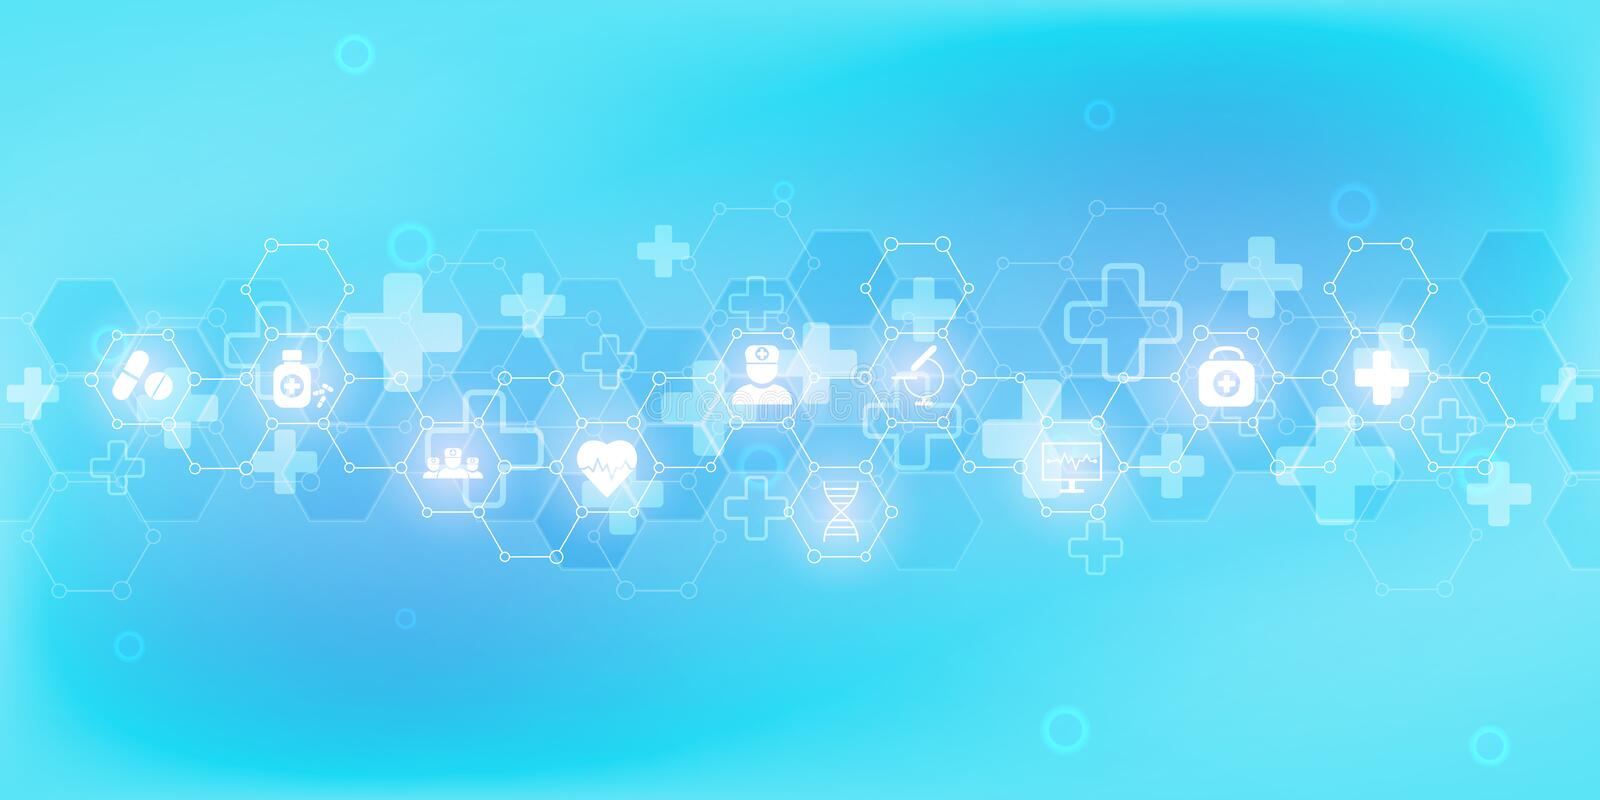 Abstract medical background with flat icons and symbols. Concepts and ideas for healthcare technology, innovation. Medicine, health, science and research vector illustration